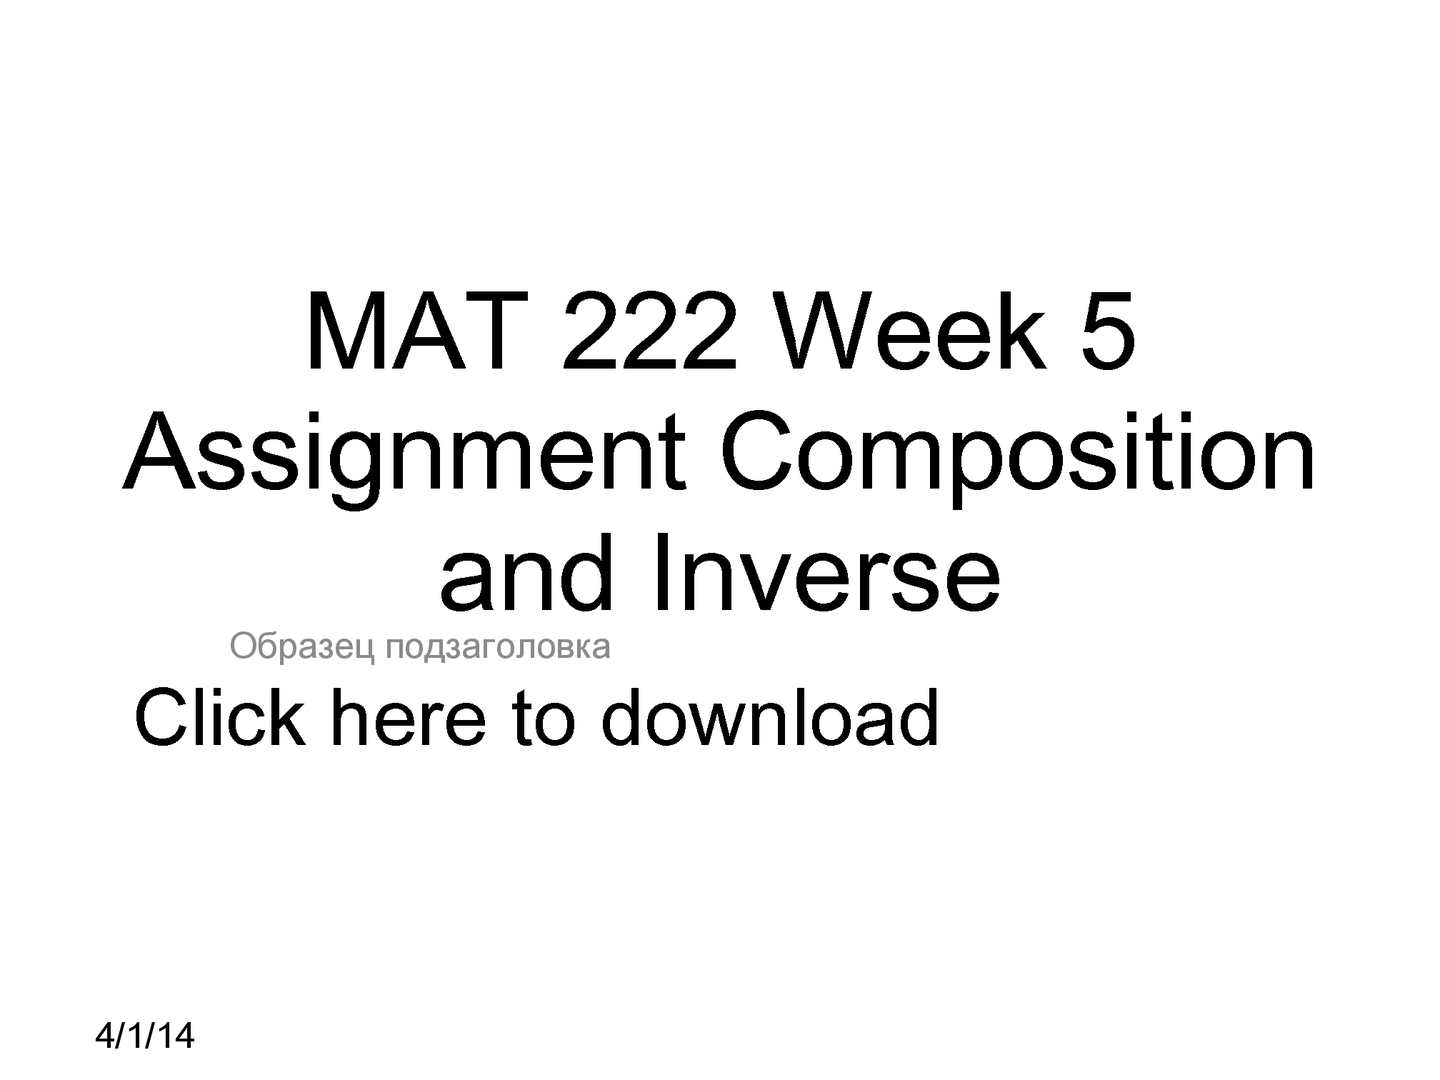 mat 222 assignment 1 Long assignment 1 - week 1 mat 222 assignment 1 - week 1 this week's assignment we are going to solve two word problems with both of these problems we will be working with proportions that both equal each other these methods will require cross multiplication and division.